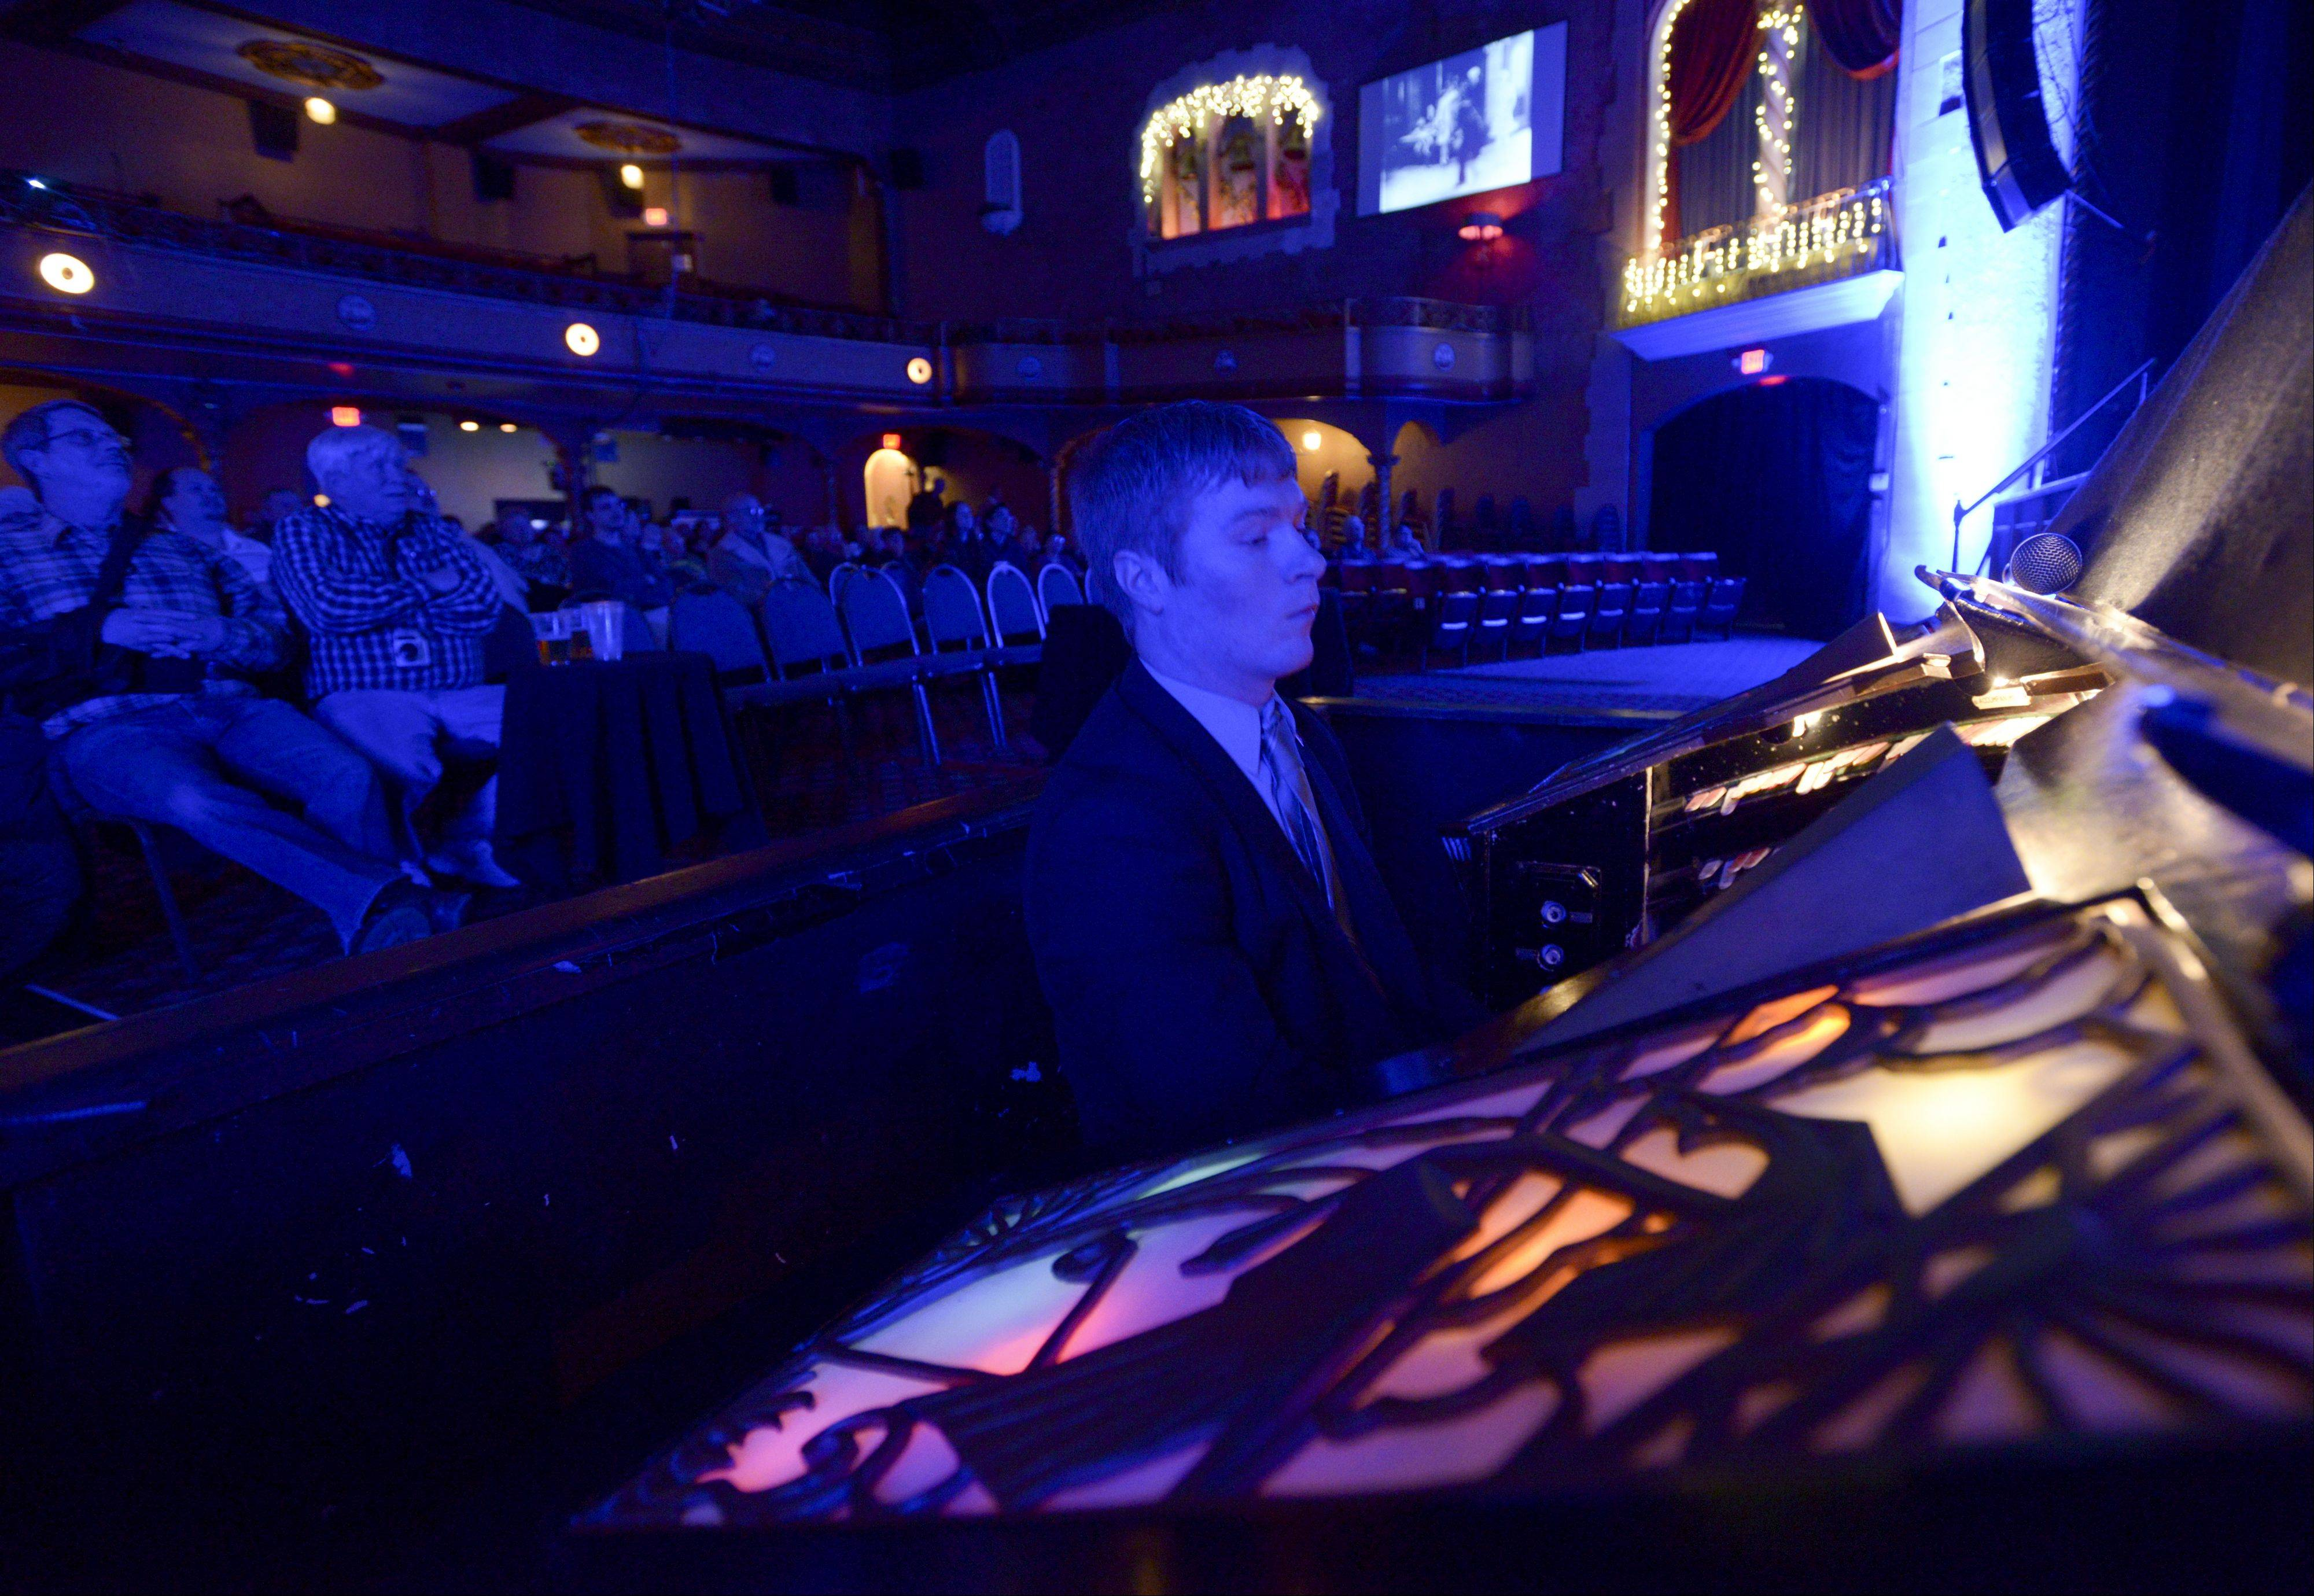 Organist Glenn Tallar plays the organ to a silent film during the Arcada Theatre's tribute to long time organist Jim Shaffer, who died in November at age 78.